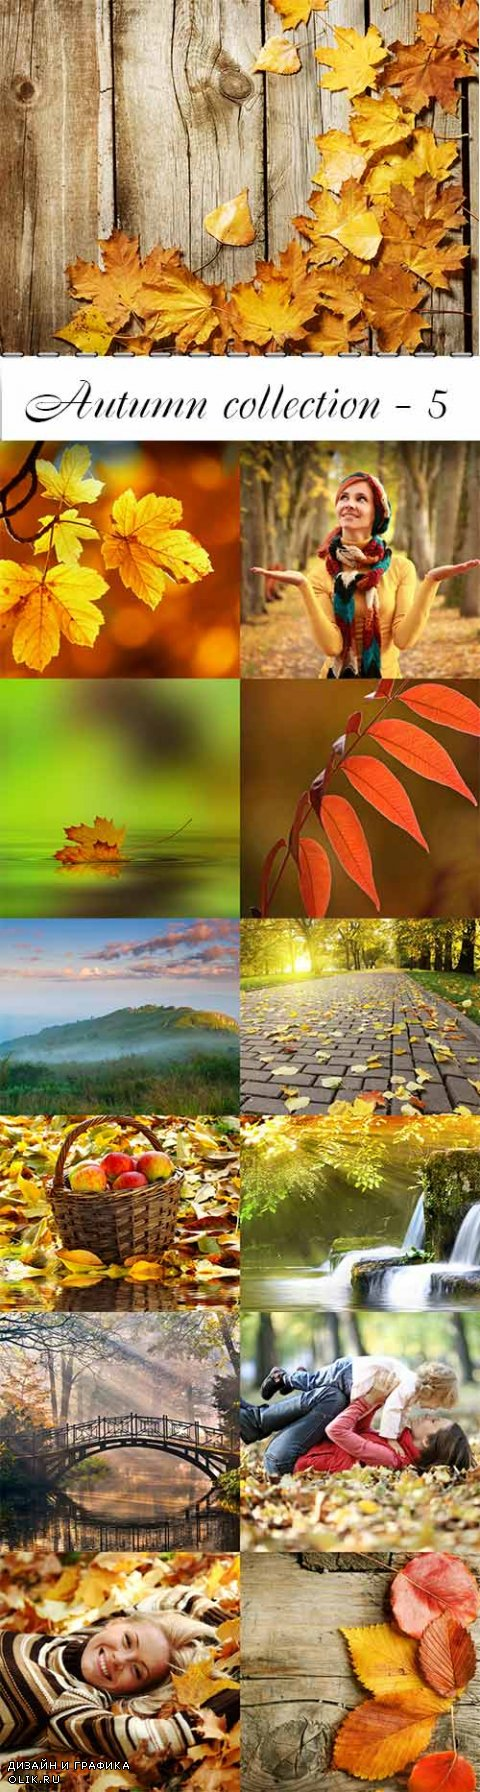 Autumn collection raster graphics - 5